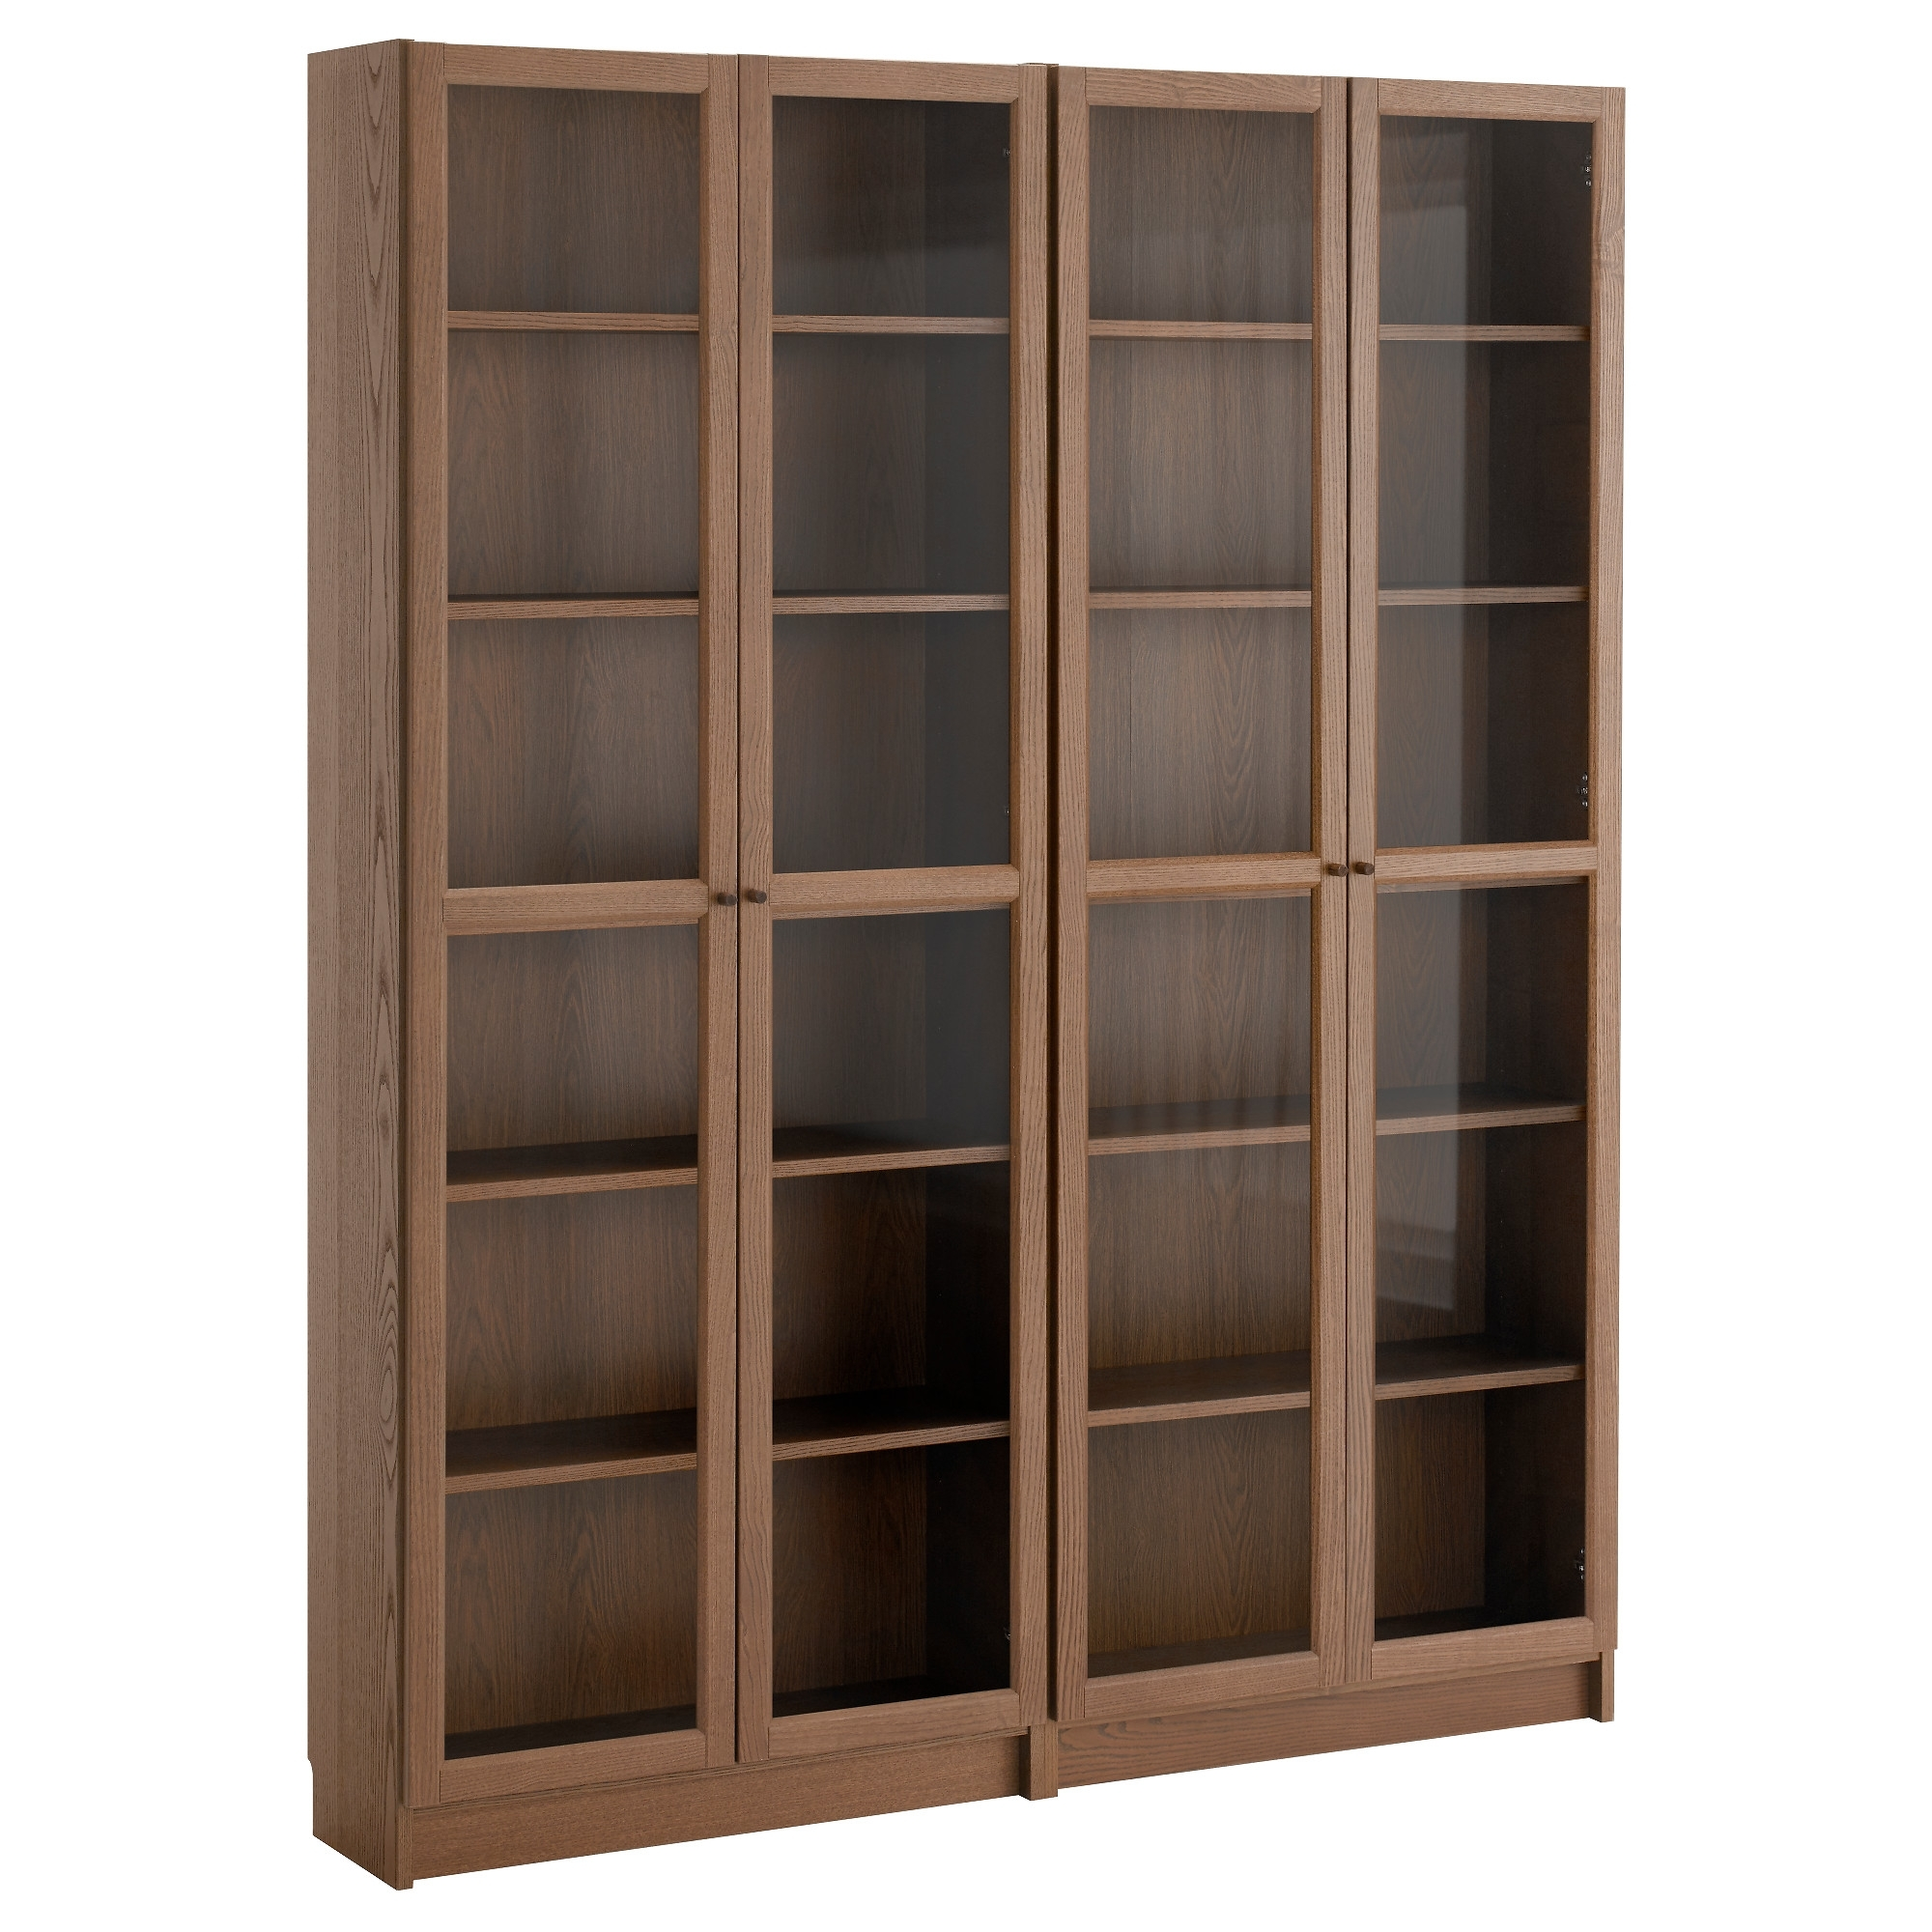 Sears Bookcases Pertaining To Well Known Billy Bookcase – Beige – Ikea (View 11 of 15)